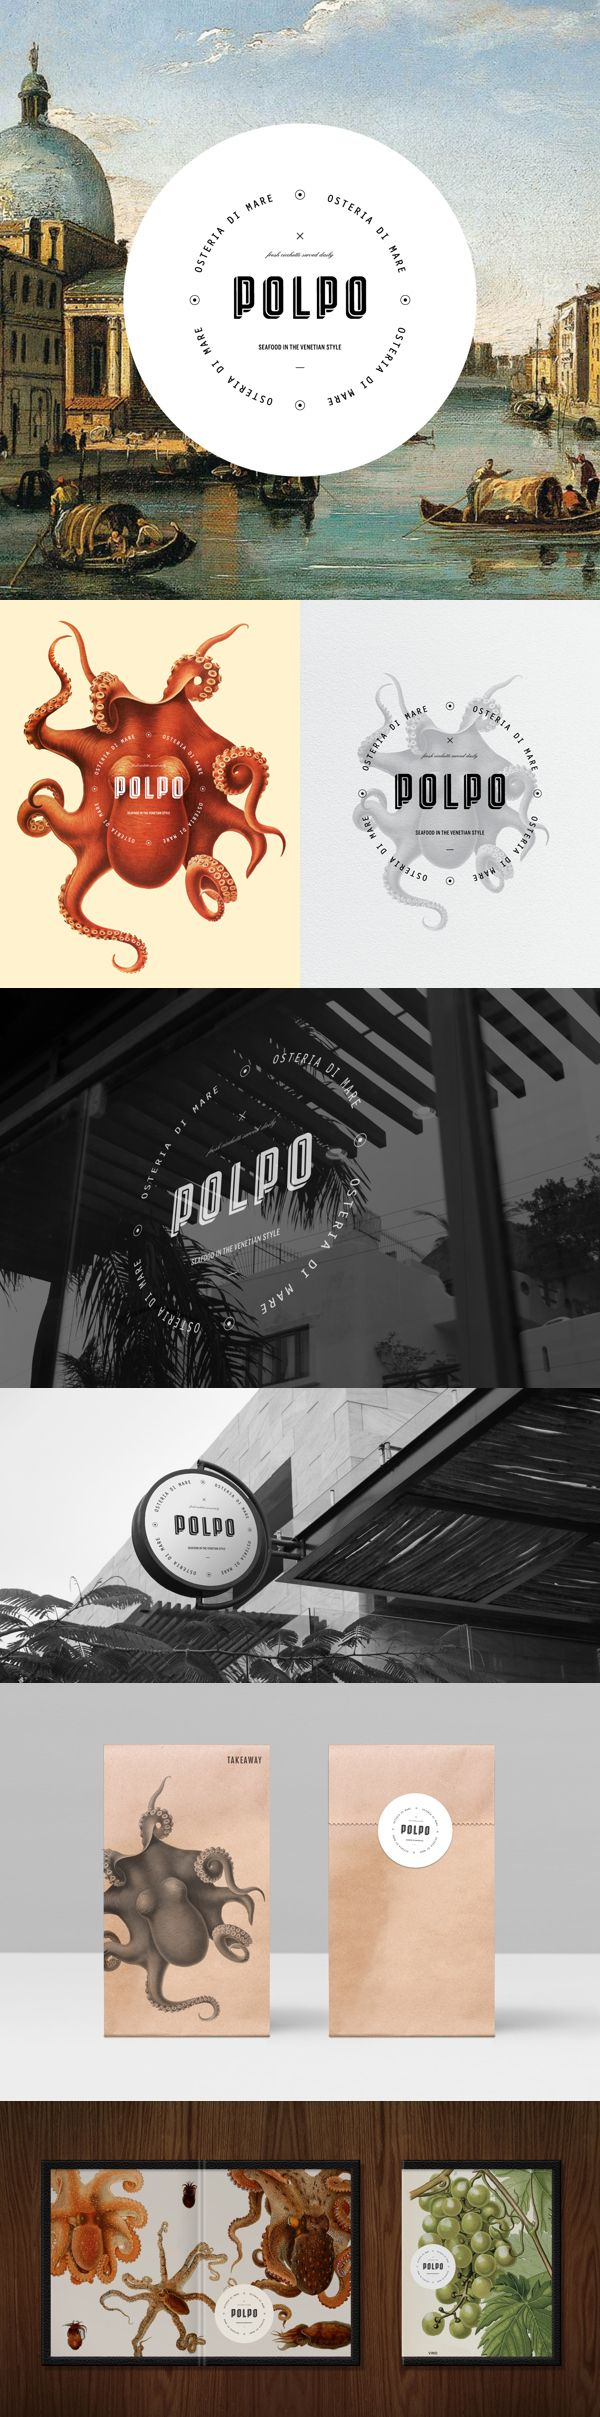 Polpo Restaurant, strong branding identity composed of beautiful illustration work! more on http://html5themes.org